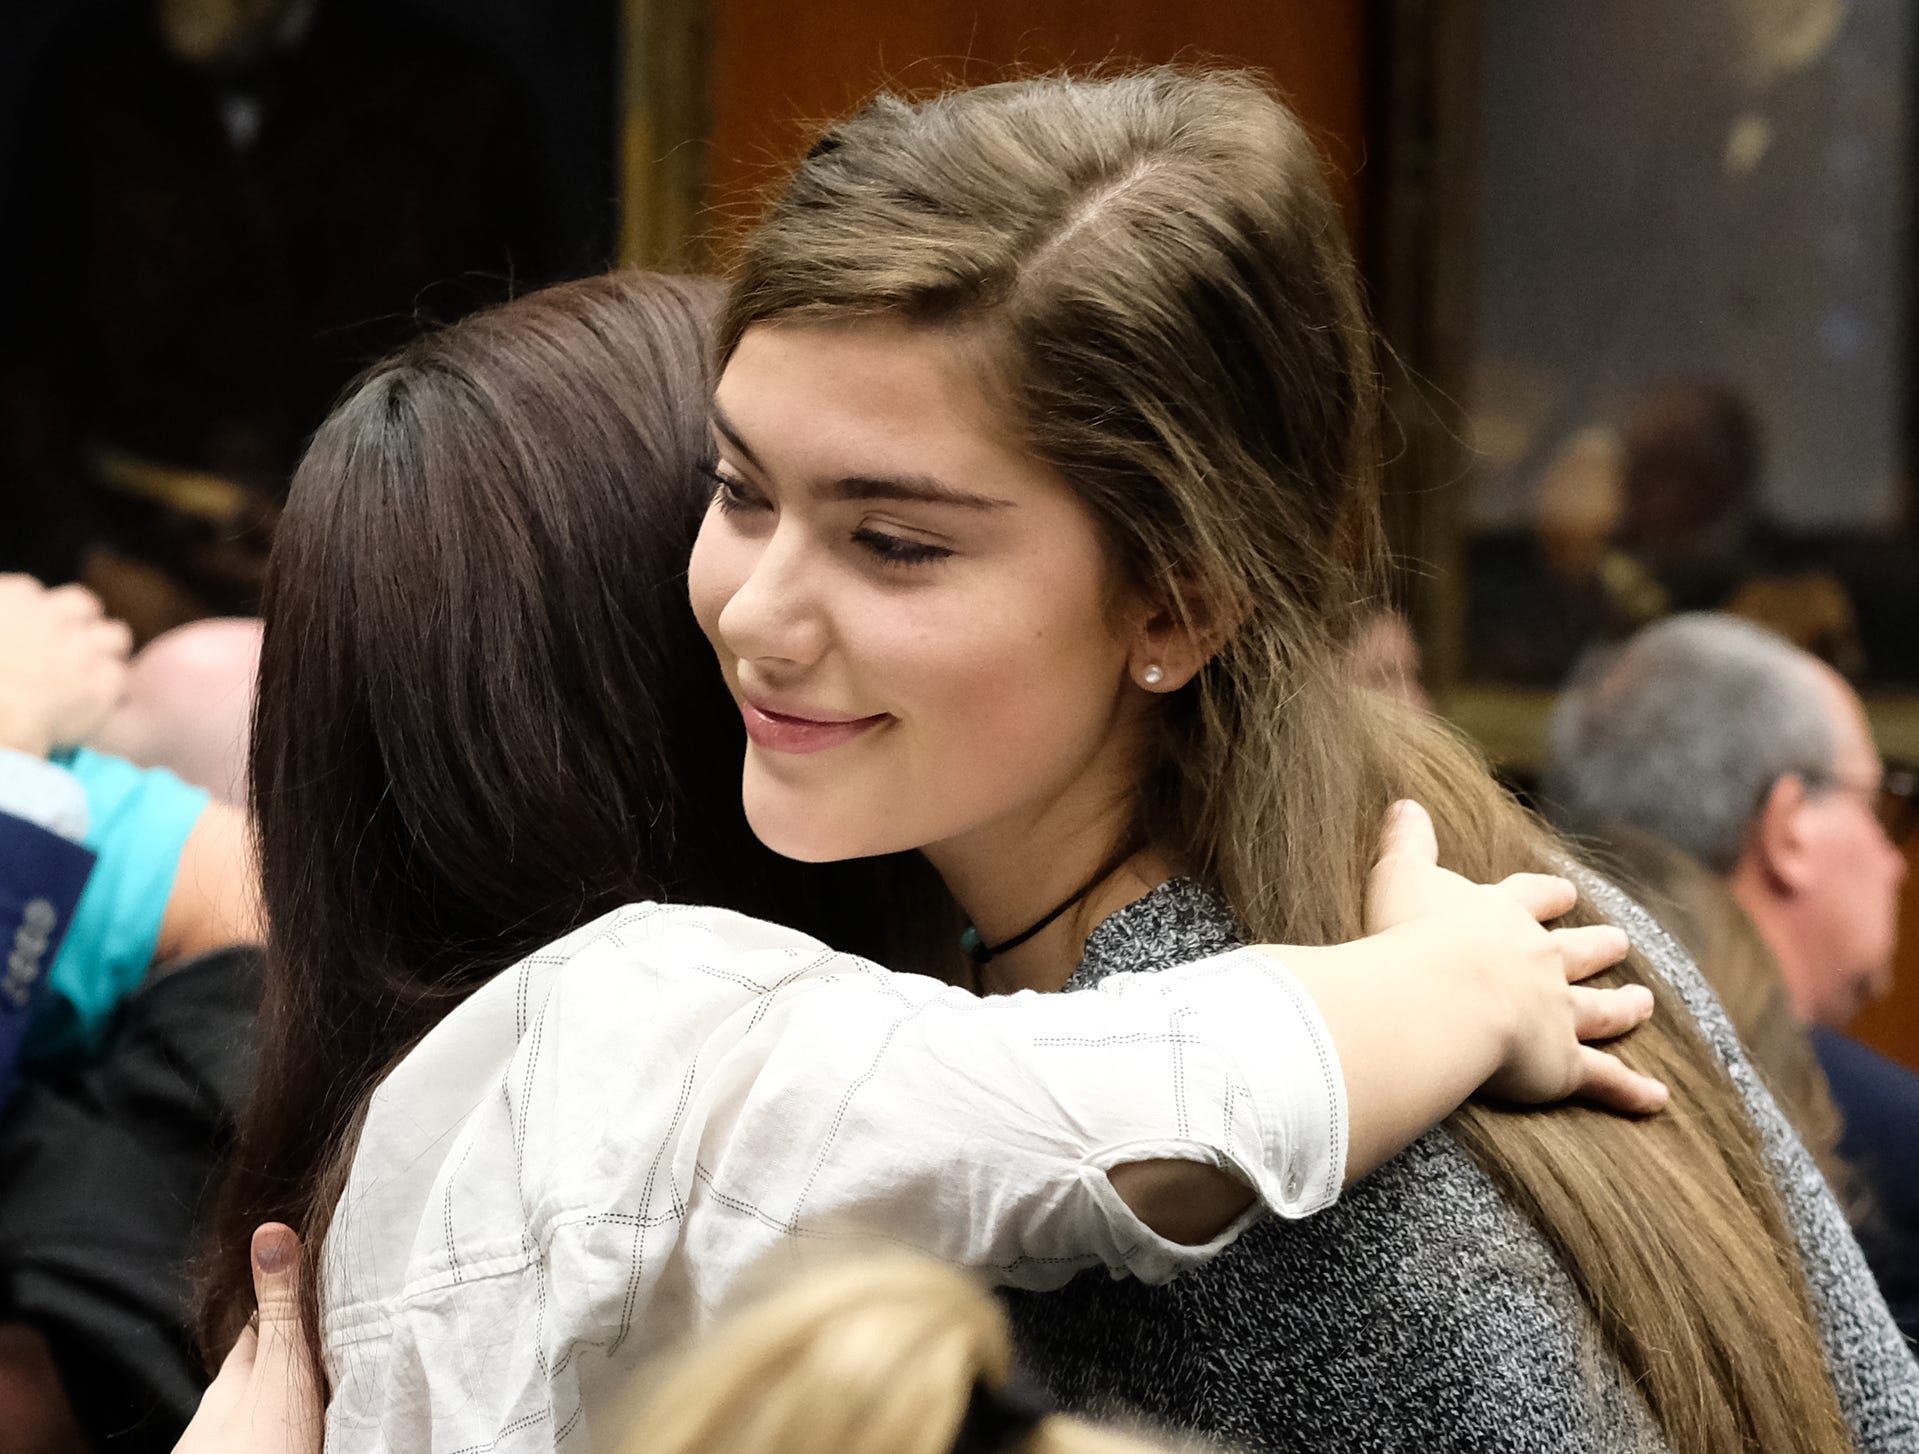 Emma Ann Miller, right, embraces Kaylee Lorincz at a MSU Board of Trustees meeting Friday, Dec. 14, 2018. The two survivors of Larry Nassar expressed their displeasure at the Board for cancelling the Healing Assistance Fund set up for survivors to access treatment.